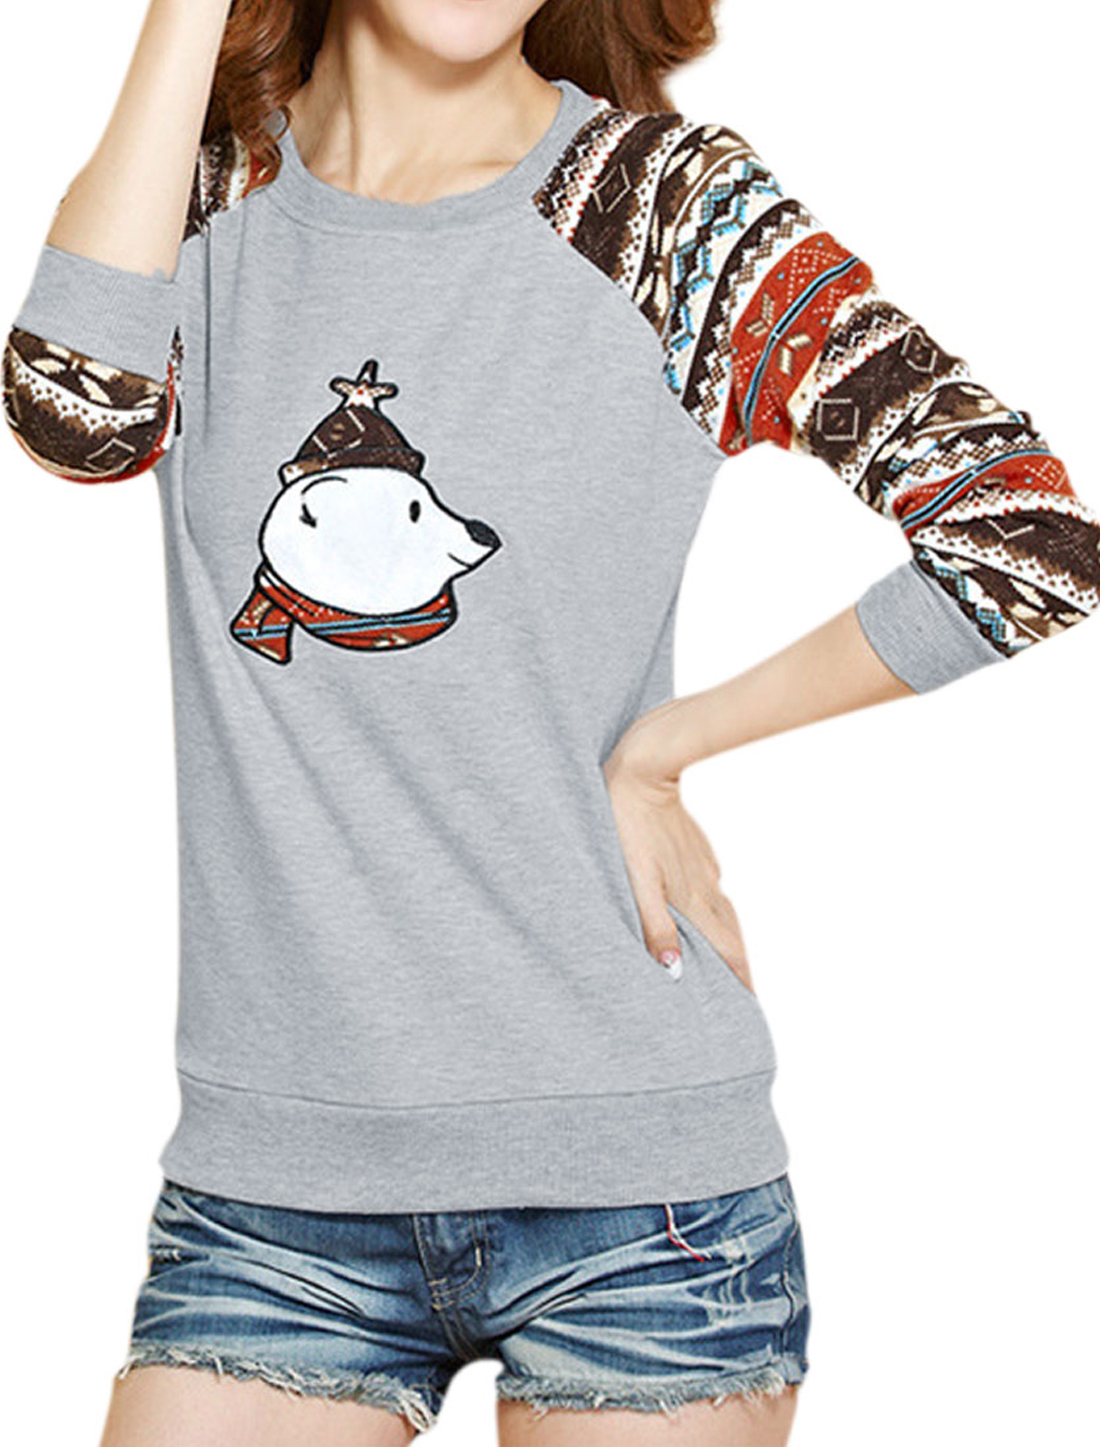 Stripes Round Neck Slipover Casual Knitted Top for Women Burgundy XS